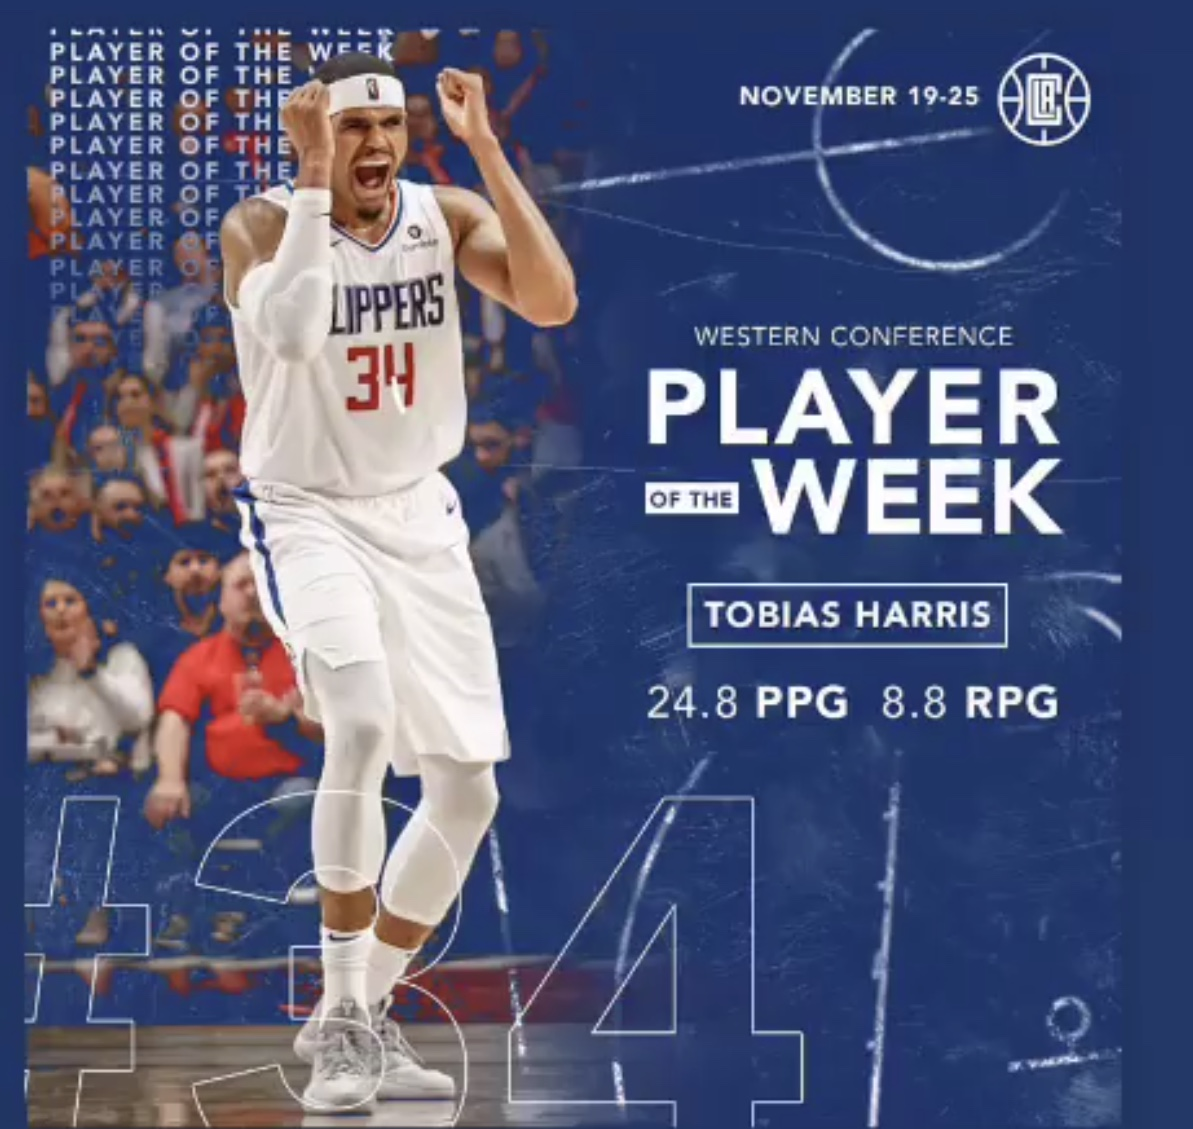 Congrats Tobias for receiving player of the week for the week 6 of the 2018-19 season November 19 – 25.